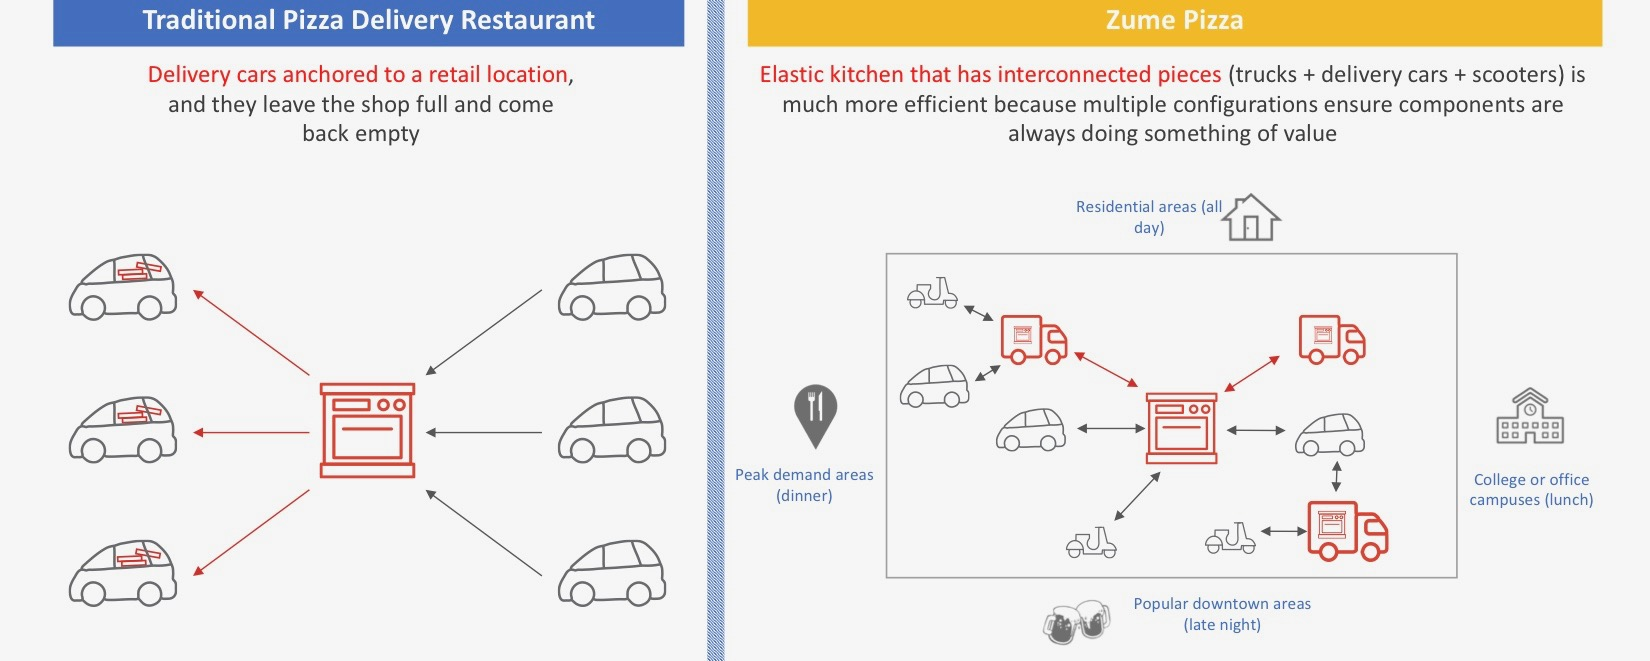 Zume Pizza Adds Extra Automation As It Rolls Out To New Cities